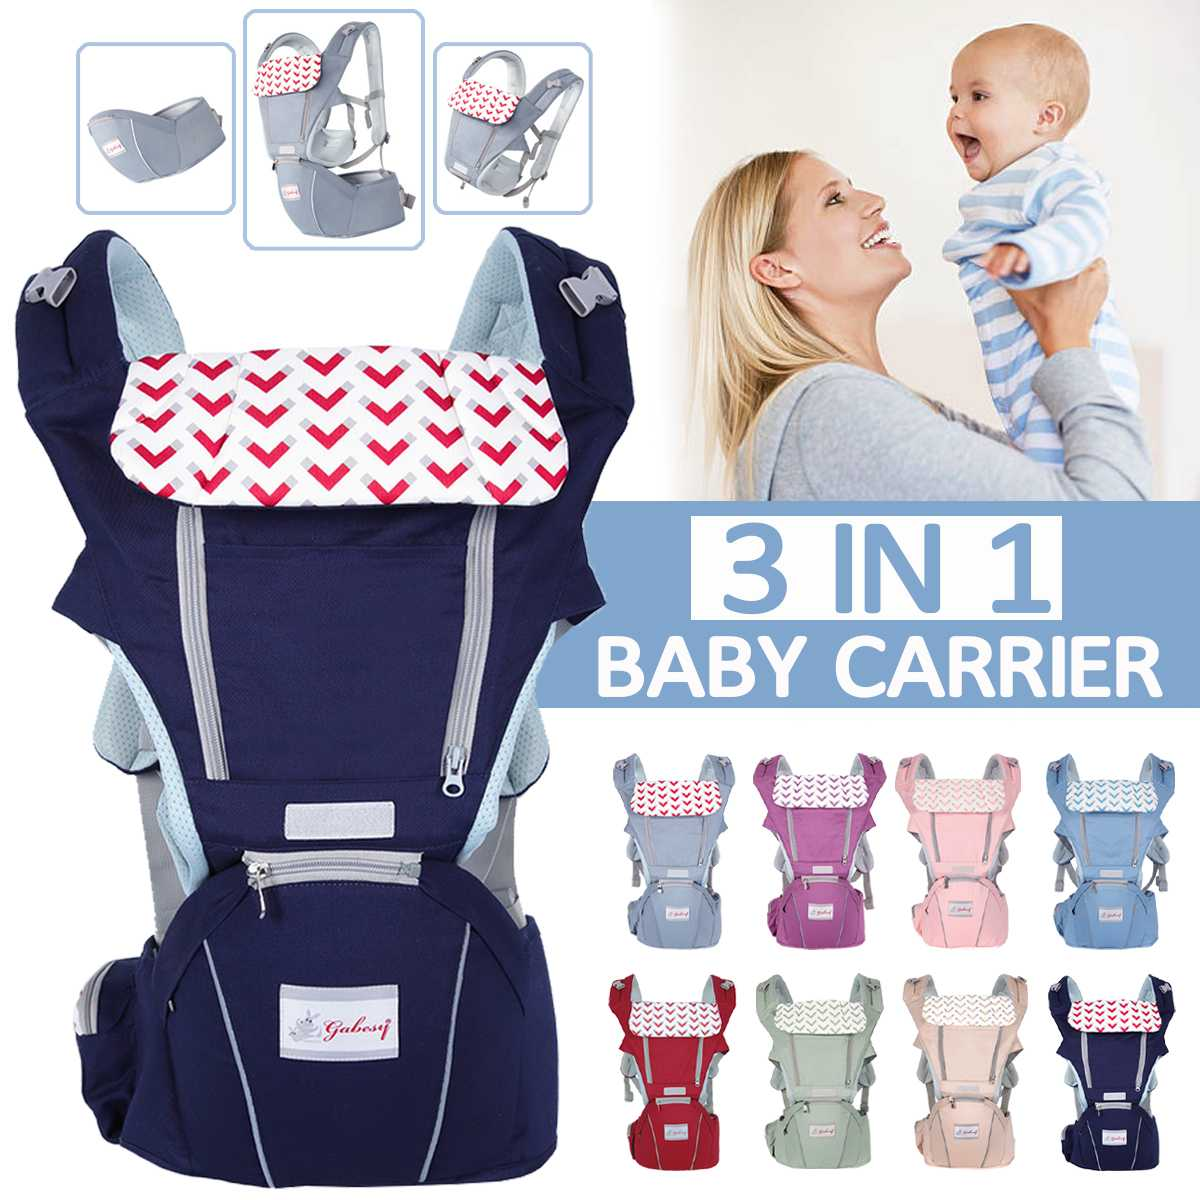 0-36 Months Breathable Front Facing Baby Carrier Waist Stool 3 In 1 Infant Comfortable Sling Backpack Pouch Wraps Baby Kangaroo